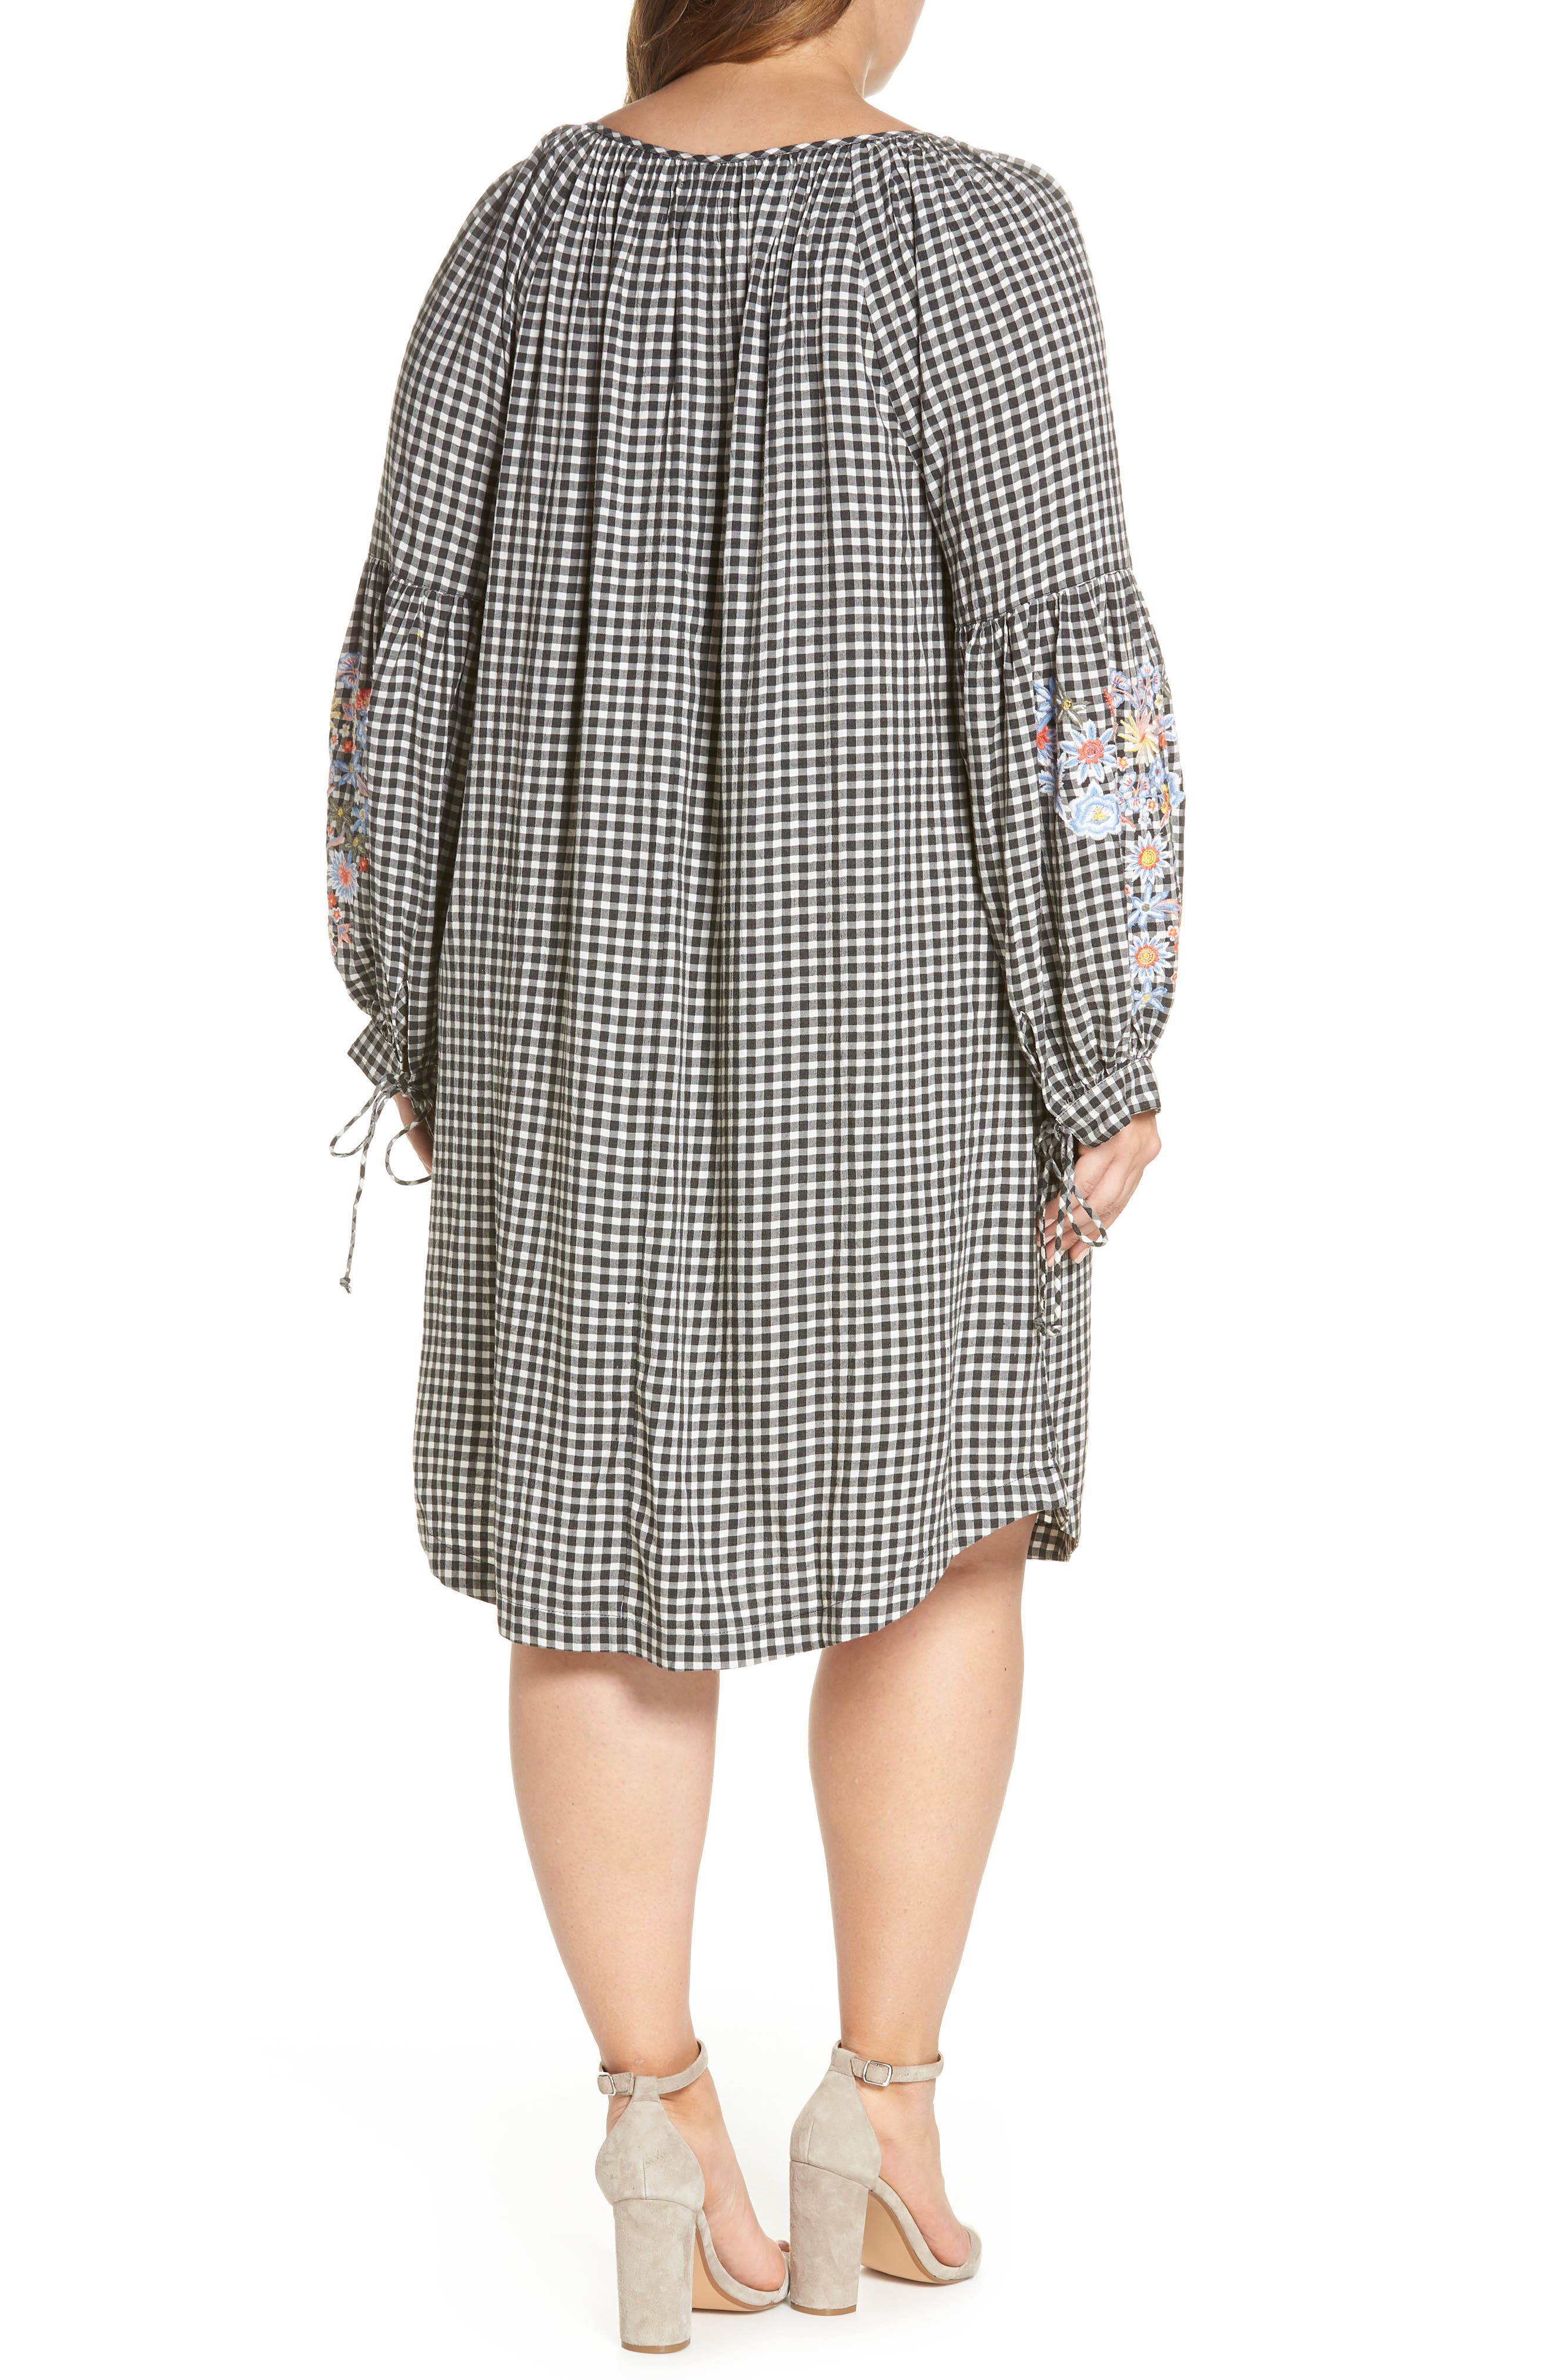 Embroidered Puff Sleeve Gingham Shift Dress,                             Alternate thumbnail 3, color,                             Black-White Gingham